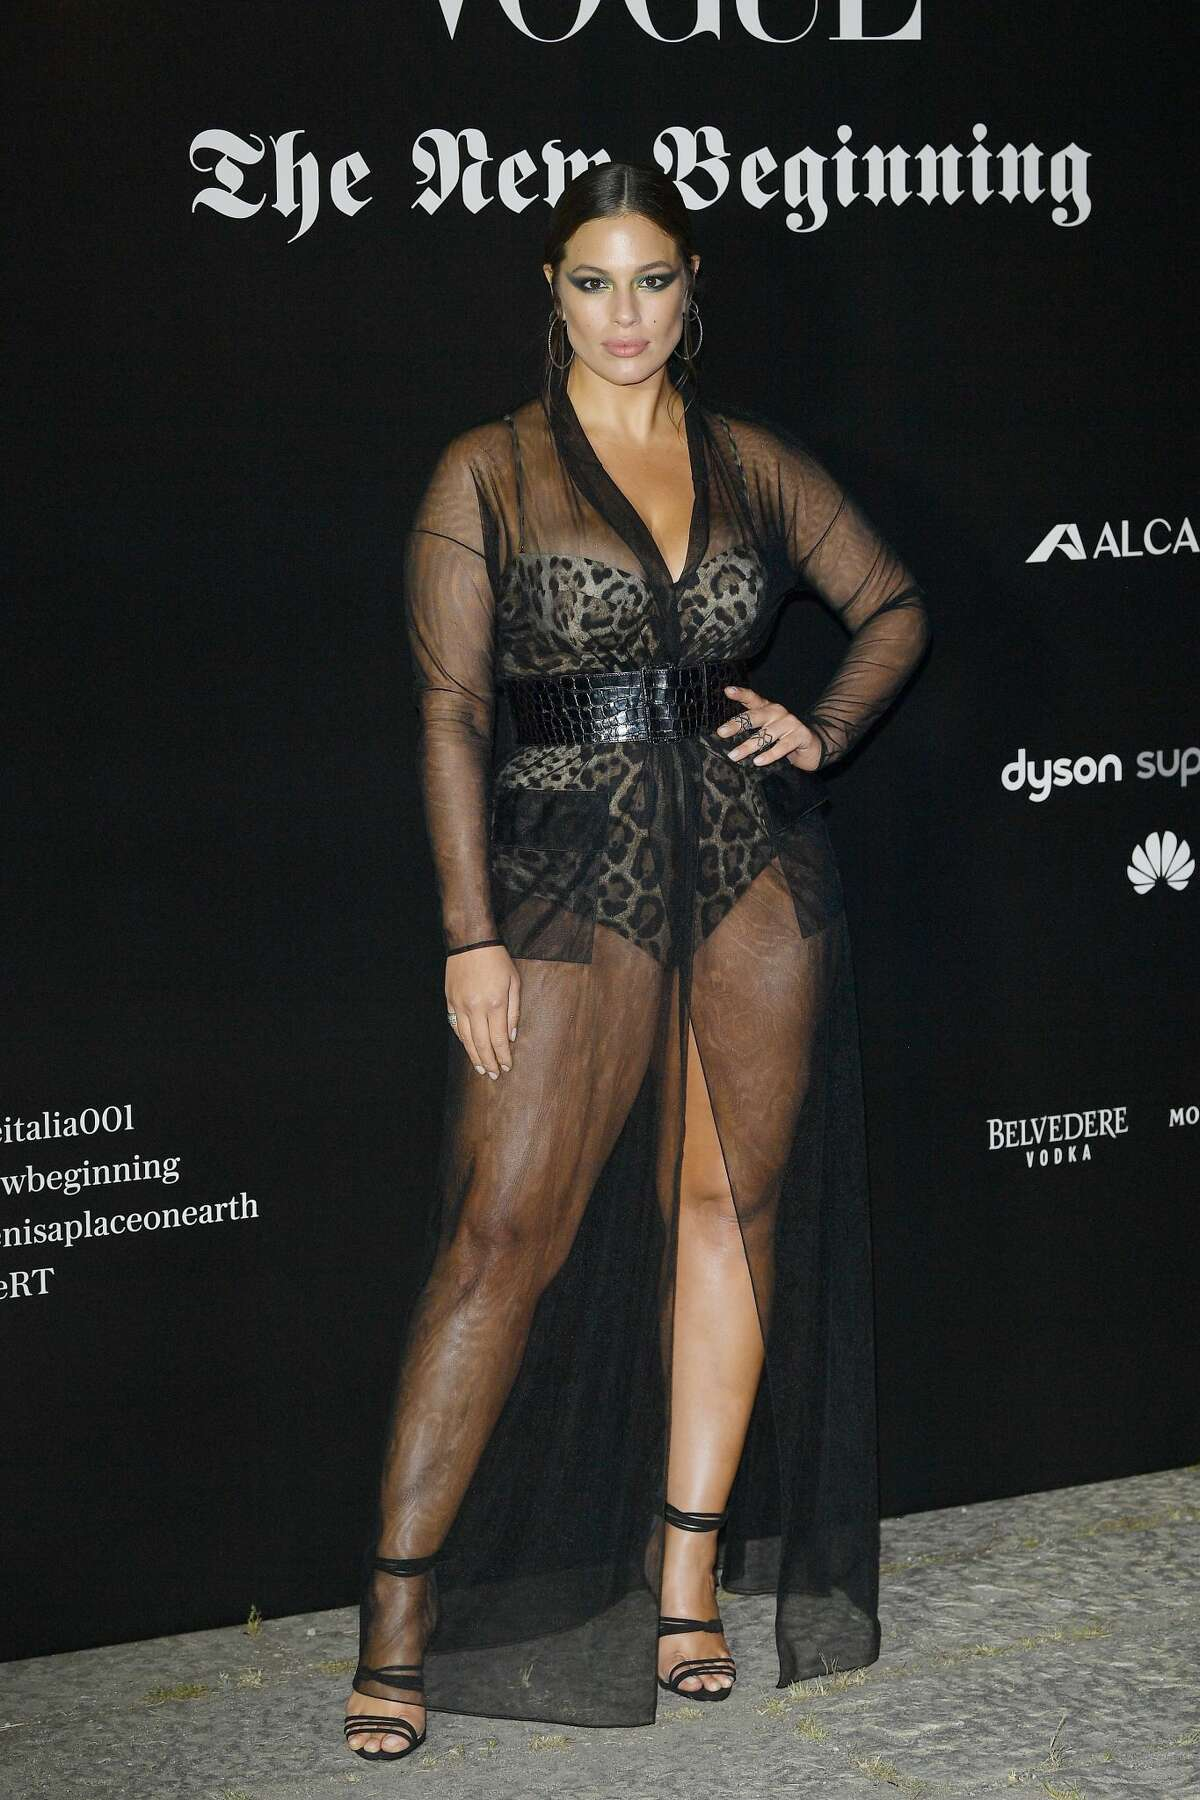 Ashley Graham attends theVogue Italia 'The New Beginning' Party during Milan Fashion Week Spring/Summer 2018 on September 22, 2017. Keep clicking to see more sheer dresses seen at Milano Fashion Week.